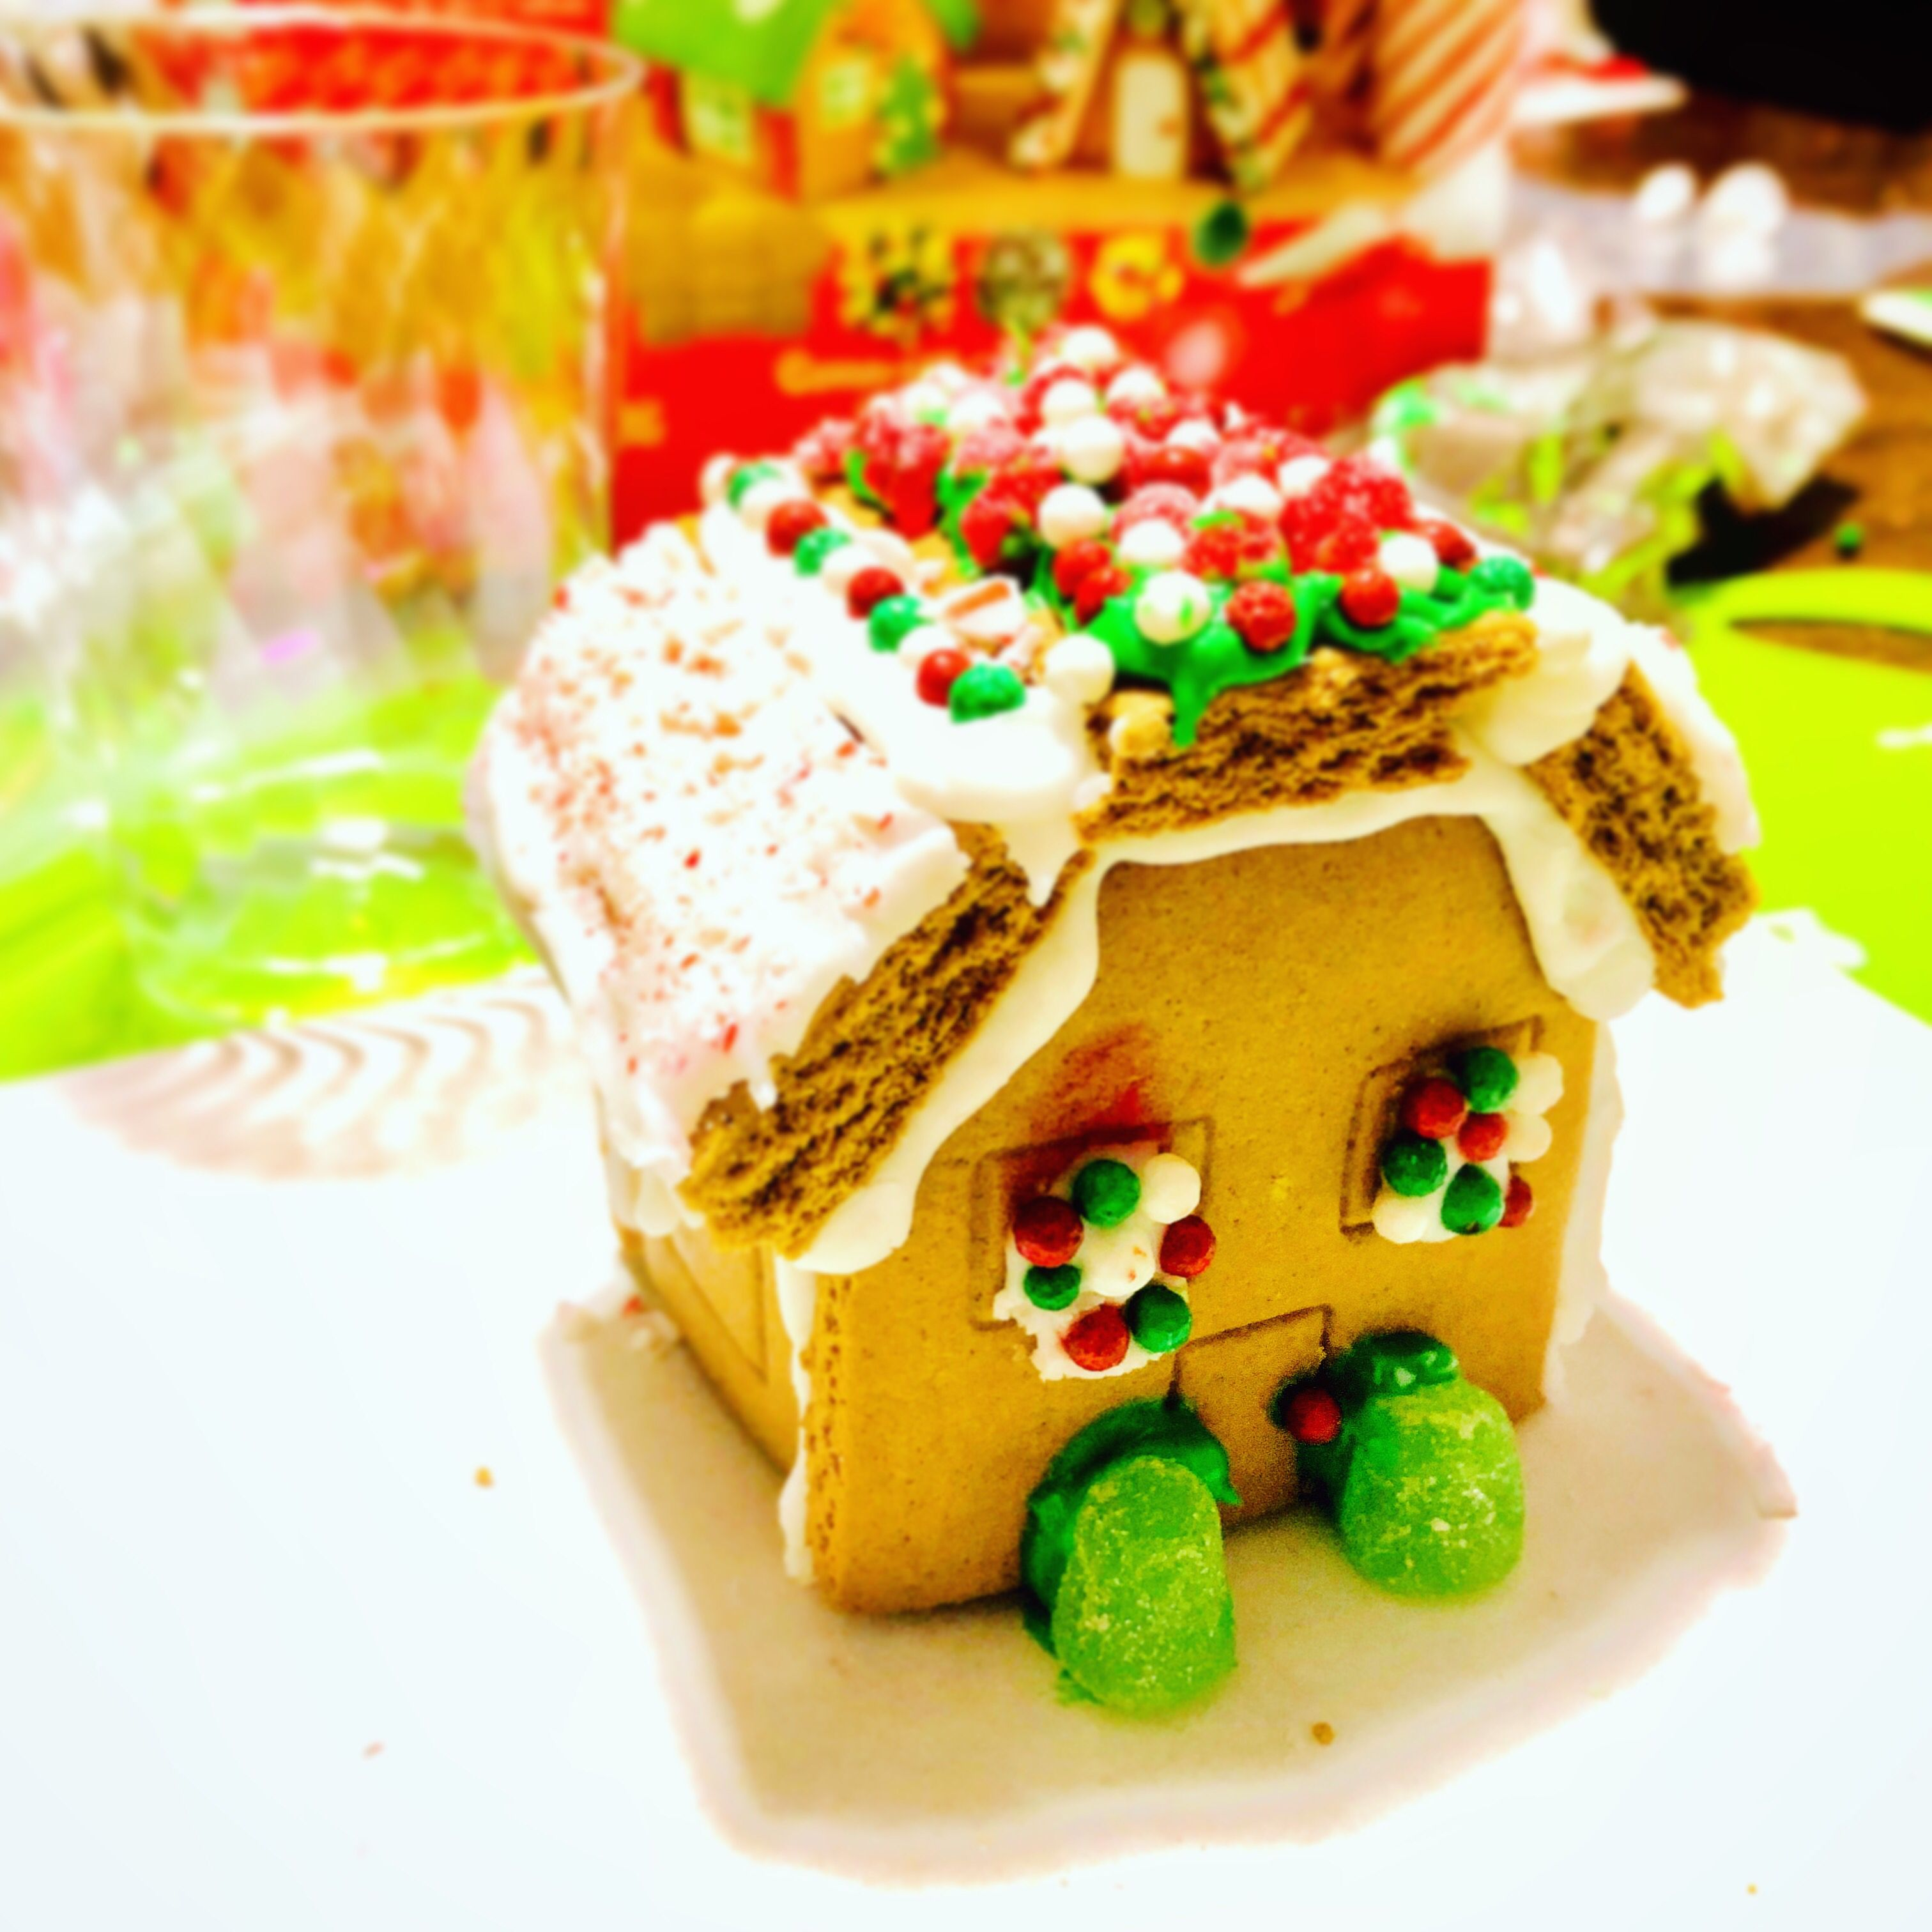 Just a little mini gingerbread house I made this winter